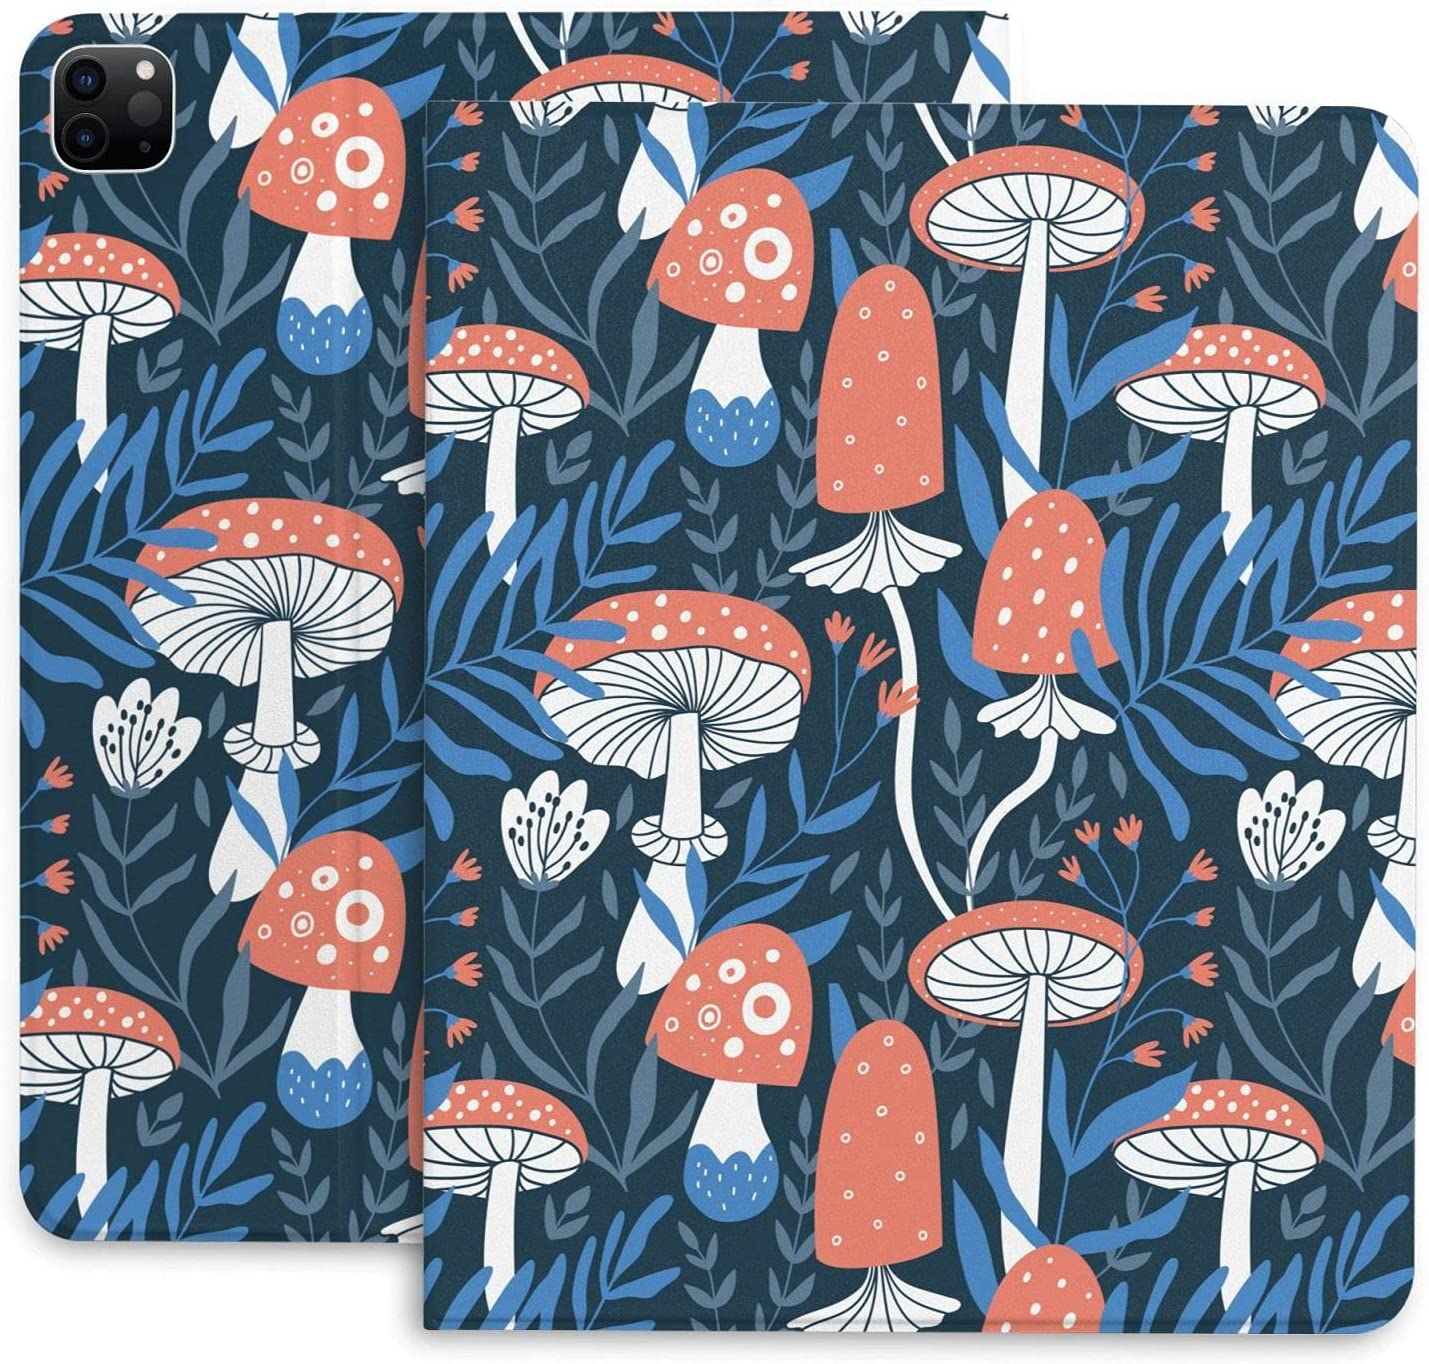 Magic Night Mushroom Case for Ipad Pro in 2020 Gen 12.9 discount Our shop OFFers the best service 4th